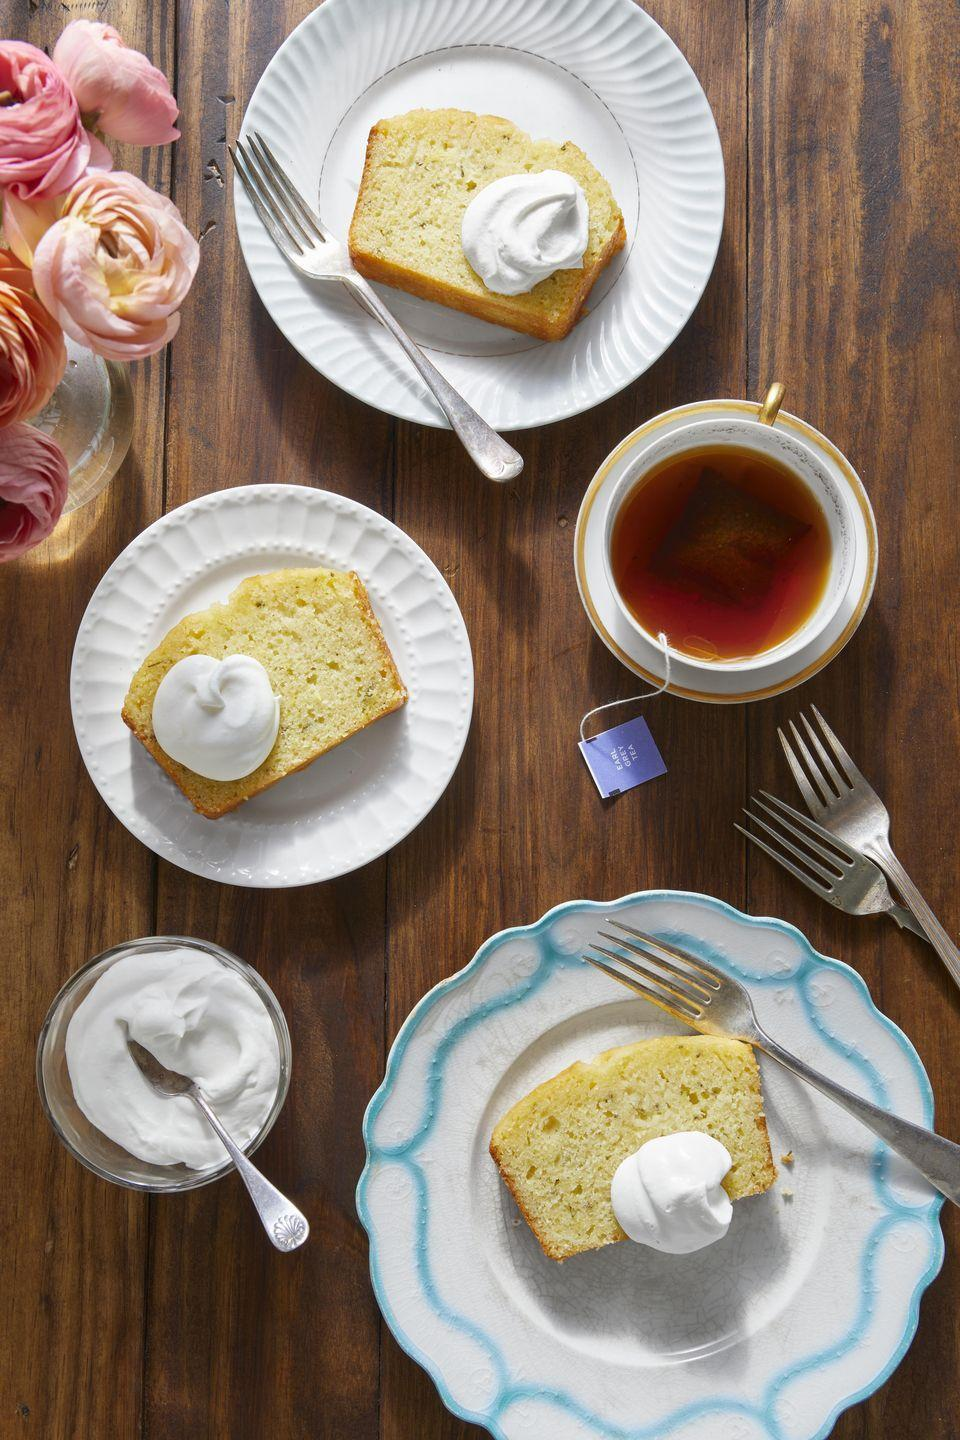 "<p>If this year's Mother's Day celebration is tending more toward a small gathering, then you can create something elegant without going big. This simple sweet cake is delicious with a dollop of whipped cream, and pairs well with a strong cup of tea.</p><p><strong><a href=""https://www.countryliving.com/food-drinks/a34962573/lemon-rosemary-tea-bread-recipe/"" rel=""nofollow noopener"" target=""_blank"" data-ylk=""slk:Get the recipe"" class=""link rapid-noclick-resp"">Get the recipe</a>.</strong></p><p><a class=""link rapid-noclick-resp"" href=""https://www.amazon.com/USA-Pan-1140LF-Bakeware-Aluminized/dp/B0029JQEIC/?tag=syn-yahoo-20&ascsubtag=%5Bartid%7C10050.g.3185%5Bsrc%7Cyahoo-us"" rel=""nofollow noopener"" target=""_blank"" data-ylk=""slk:SHOP LOAF PANS"">SHOP LOAF PANS</a></p>"